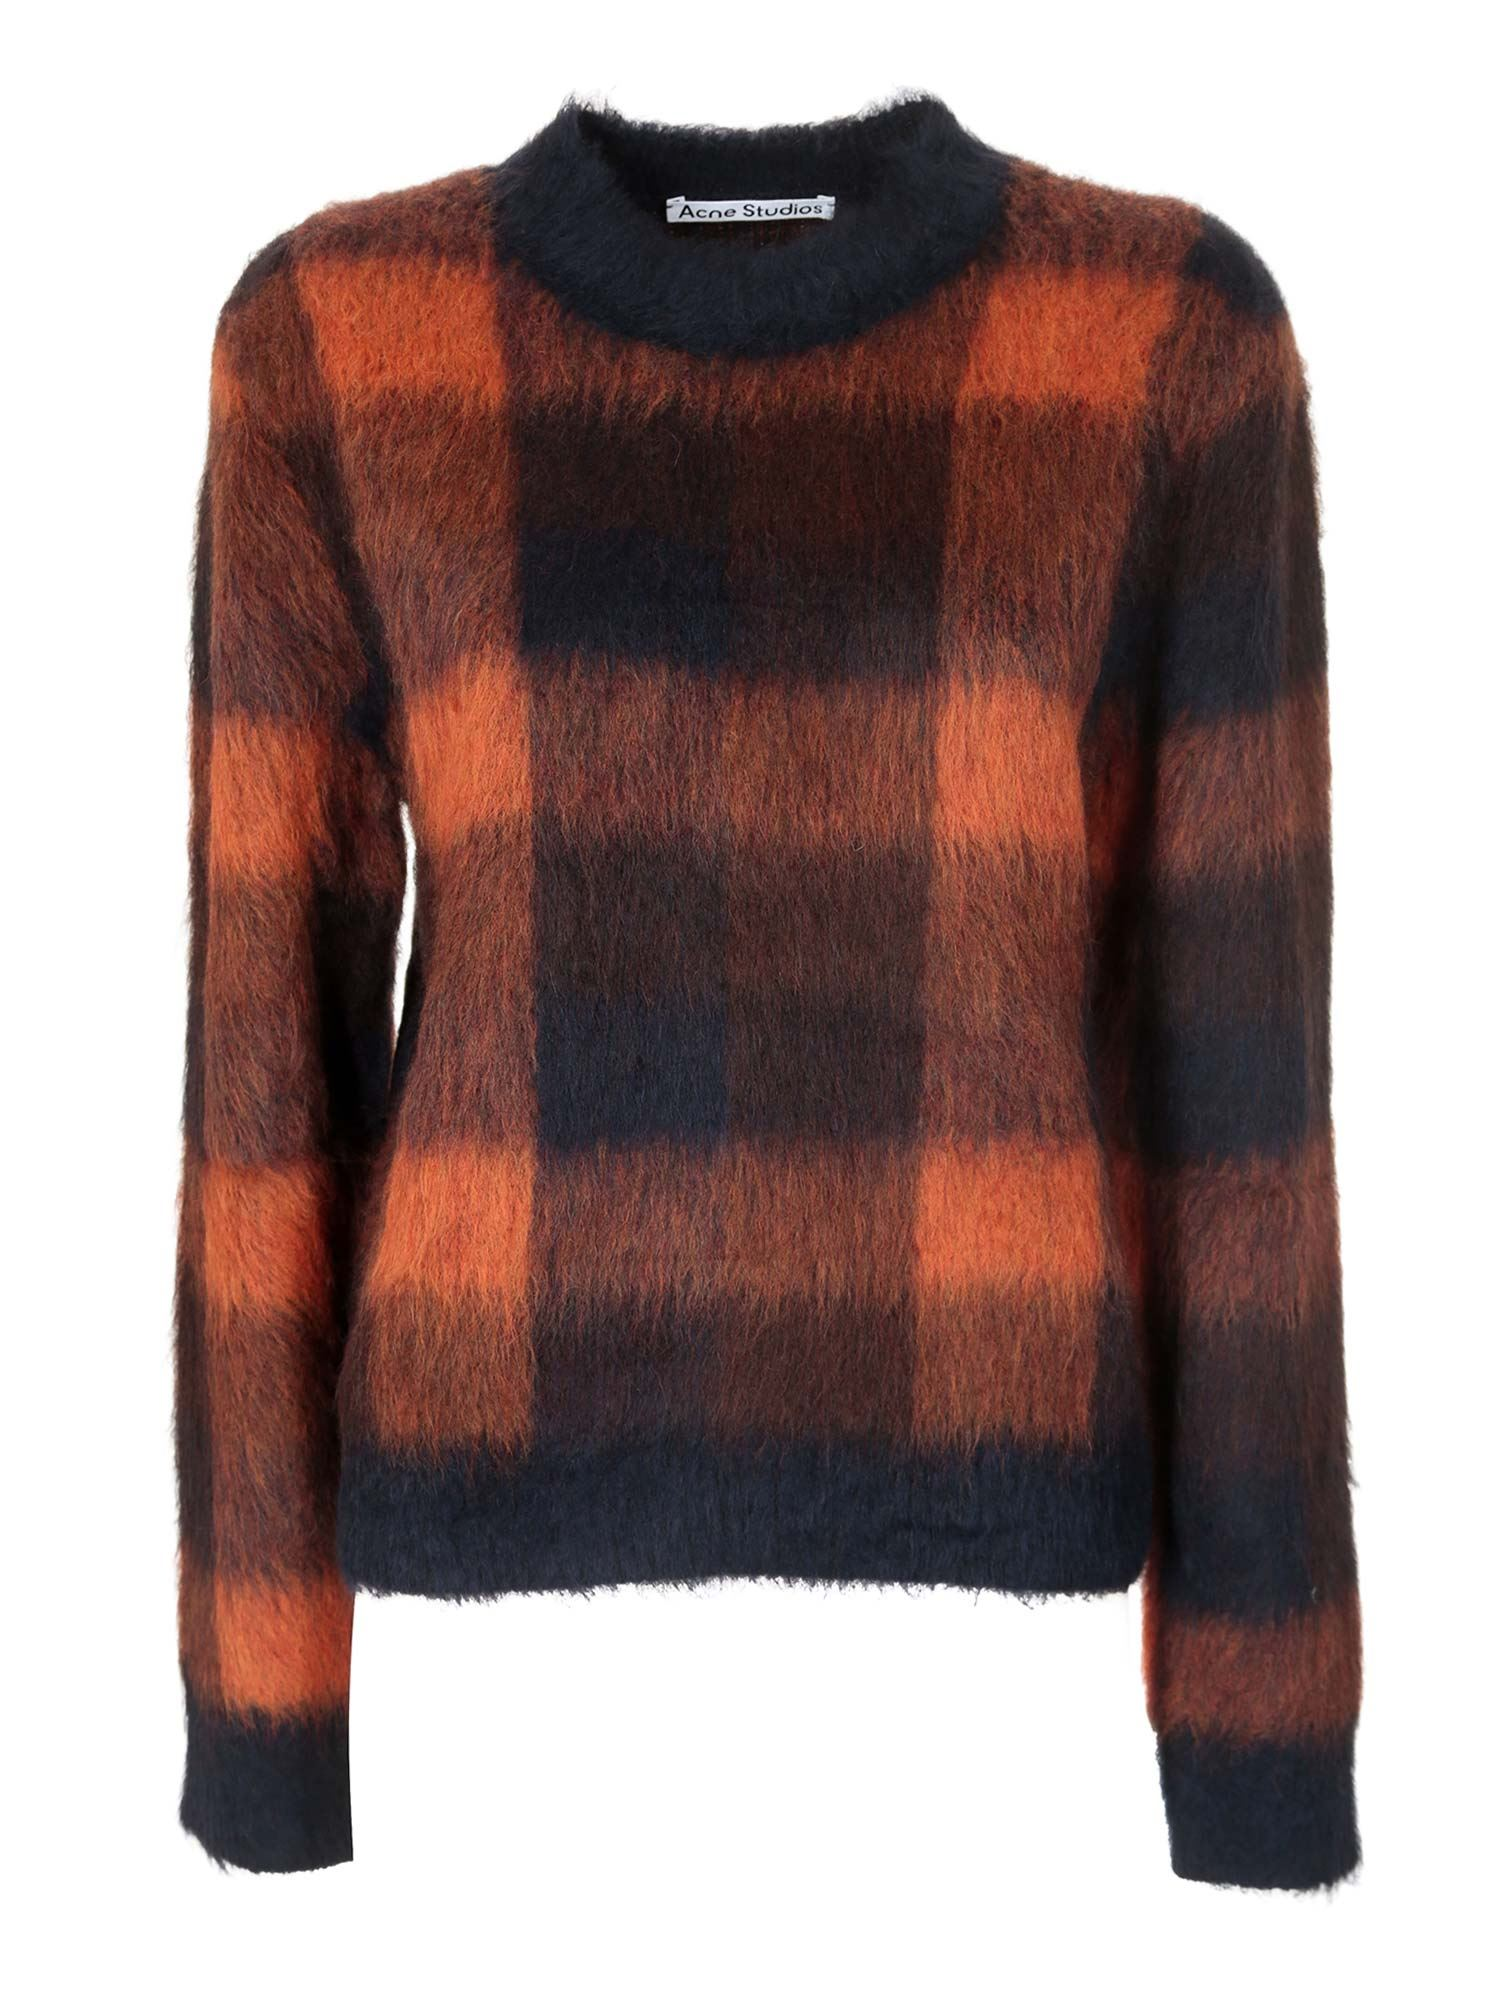 Acne Studios KANYA SWEATER IN BLUE AND ORANGE